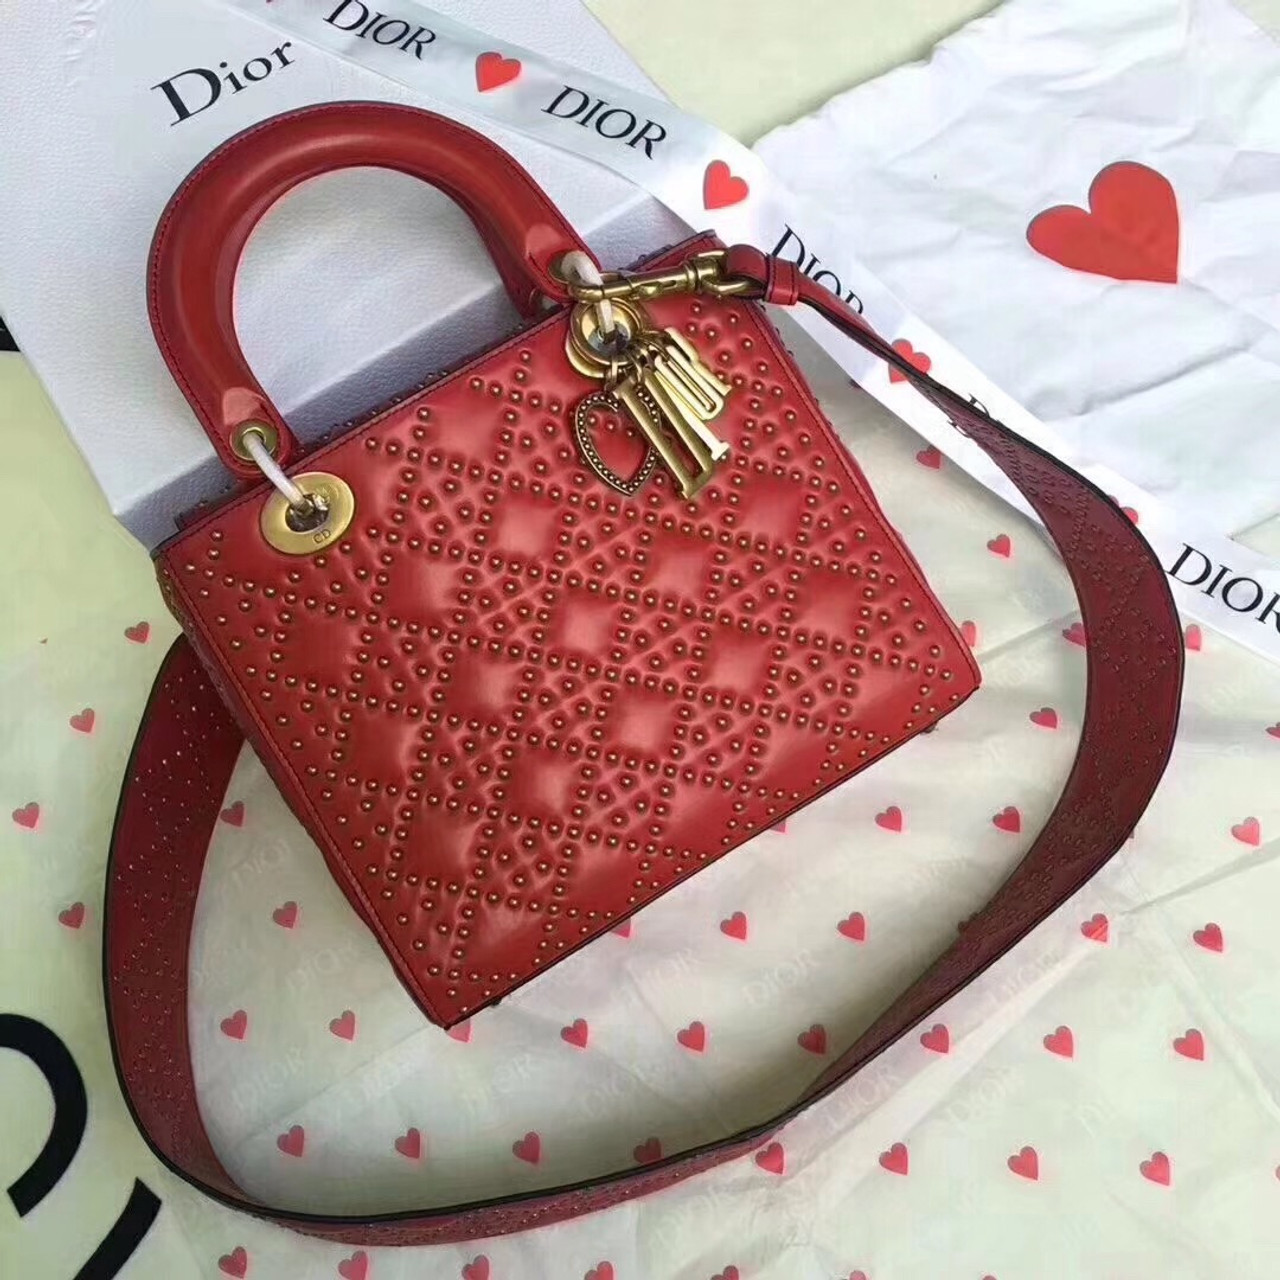 e2c3e824d4 Christian Dior SUPPLE LADY DIOR BAG IN STUDDED RED LAMBSKIN LIMITED EDITION  VALENTINE'S DAY 2018